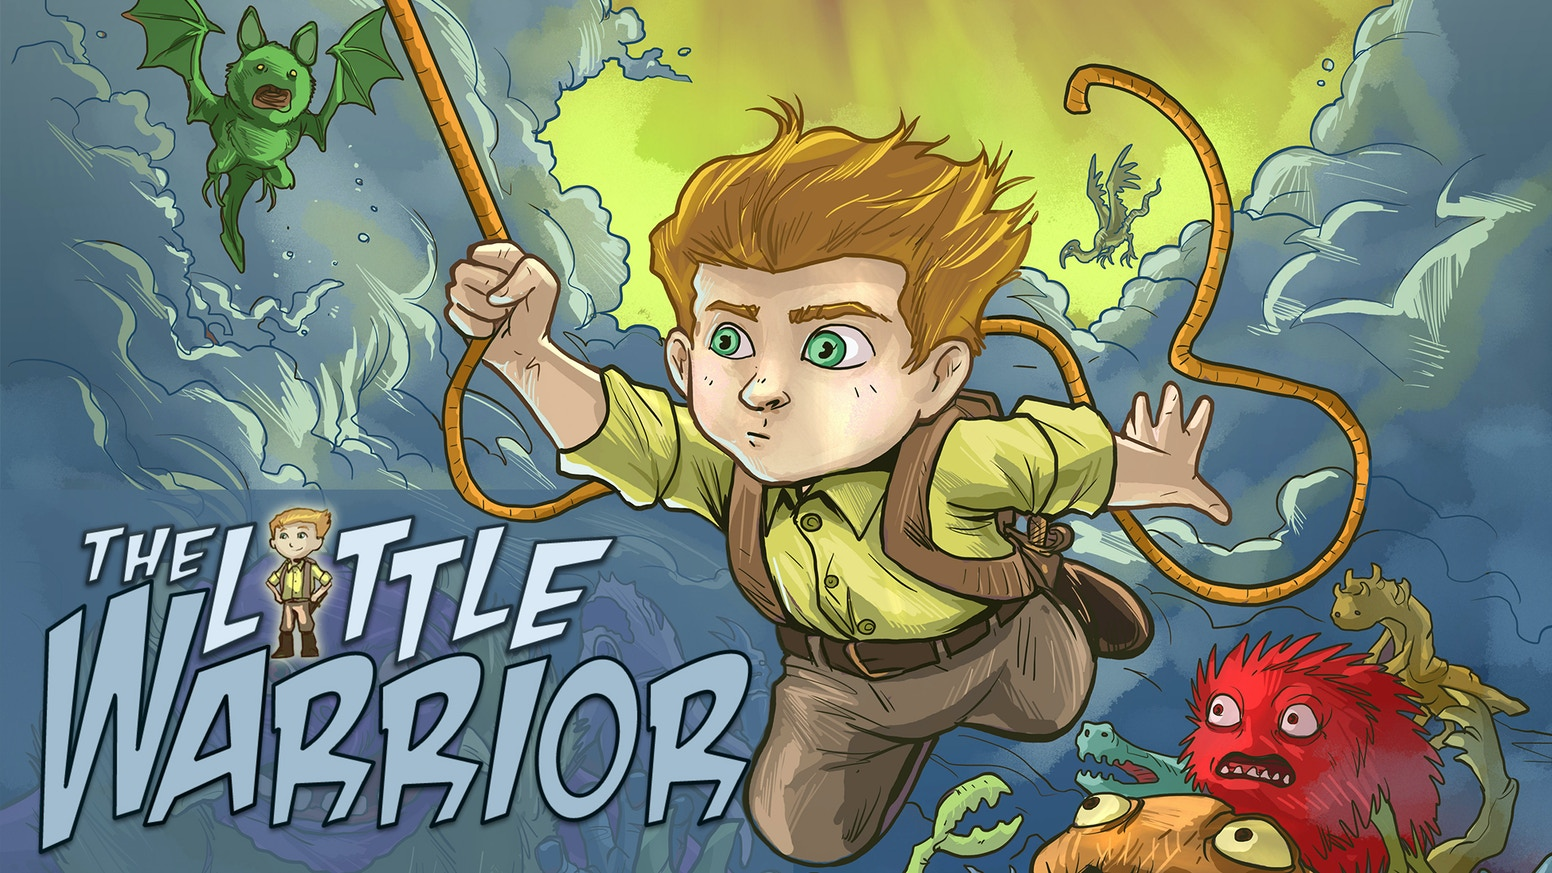 Follow the Little Warrior as he embarks on an amazing adventure, filled with dragons, ogres, magic, and a whole lot of heart.